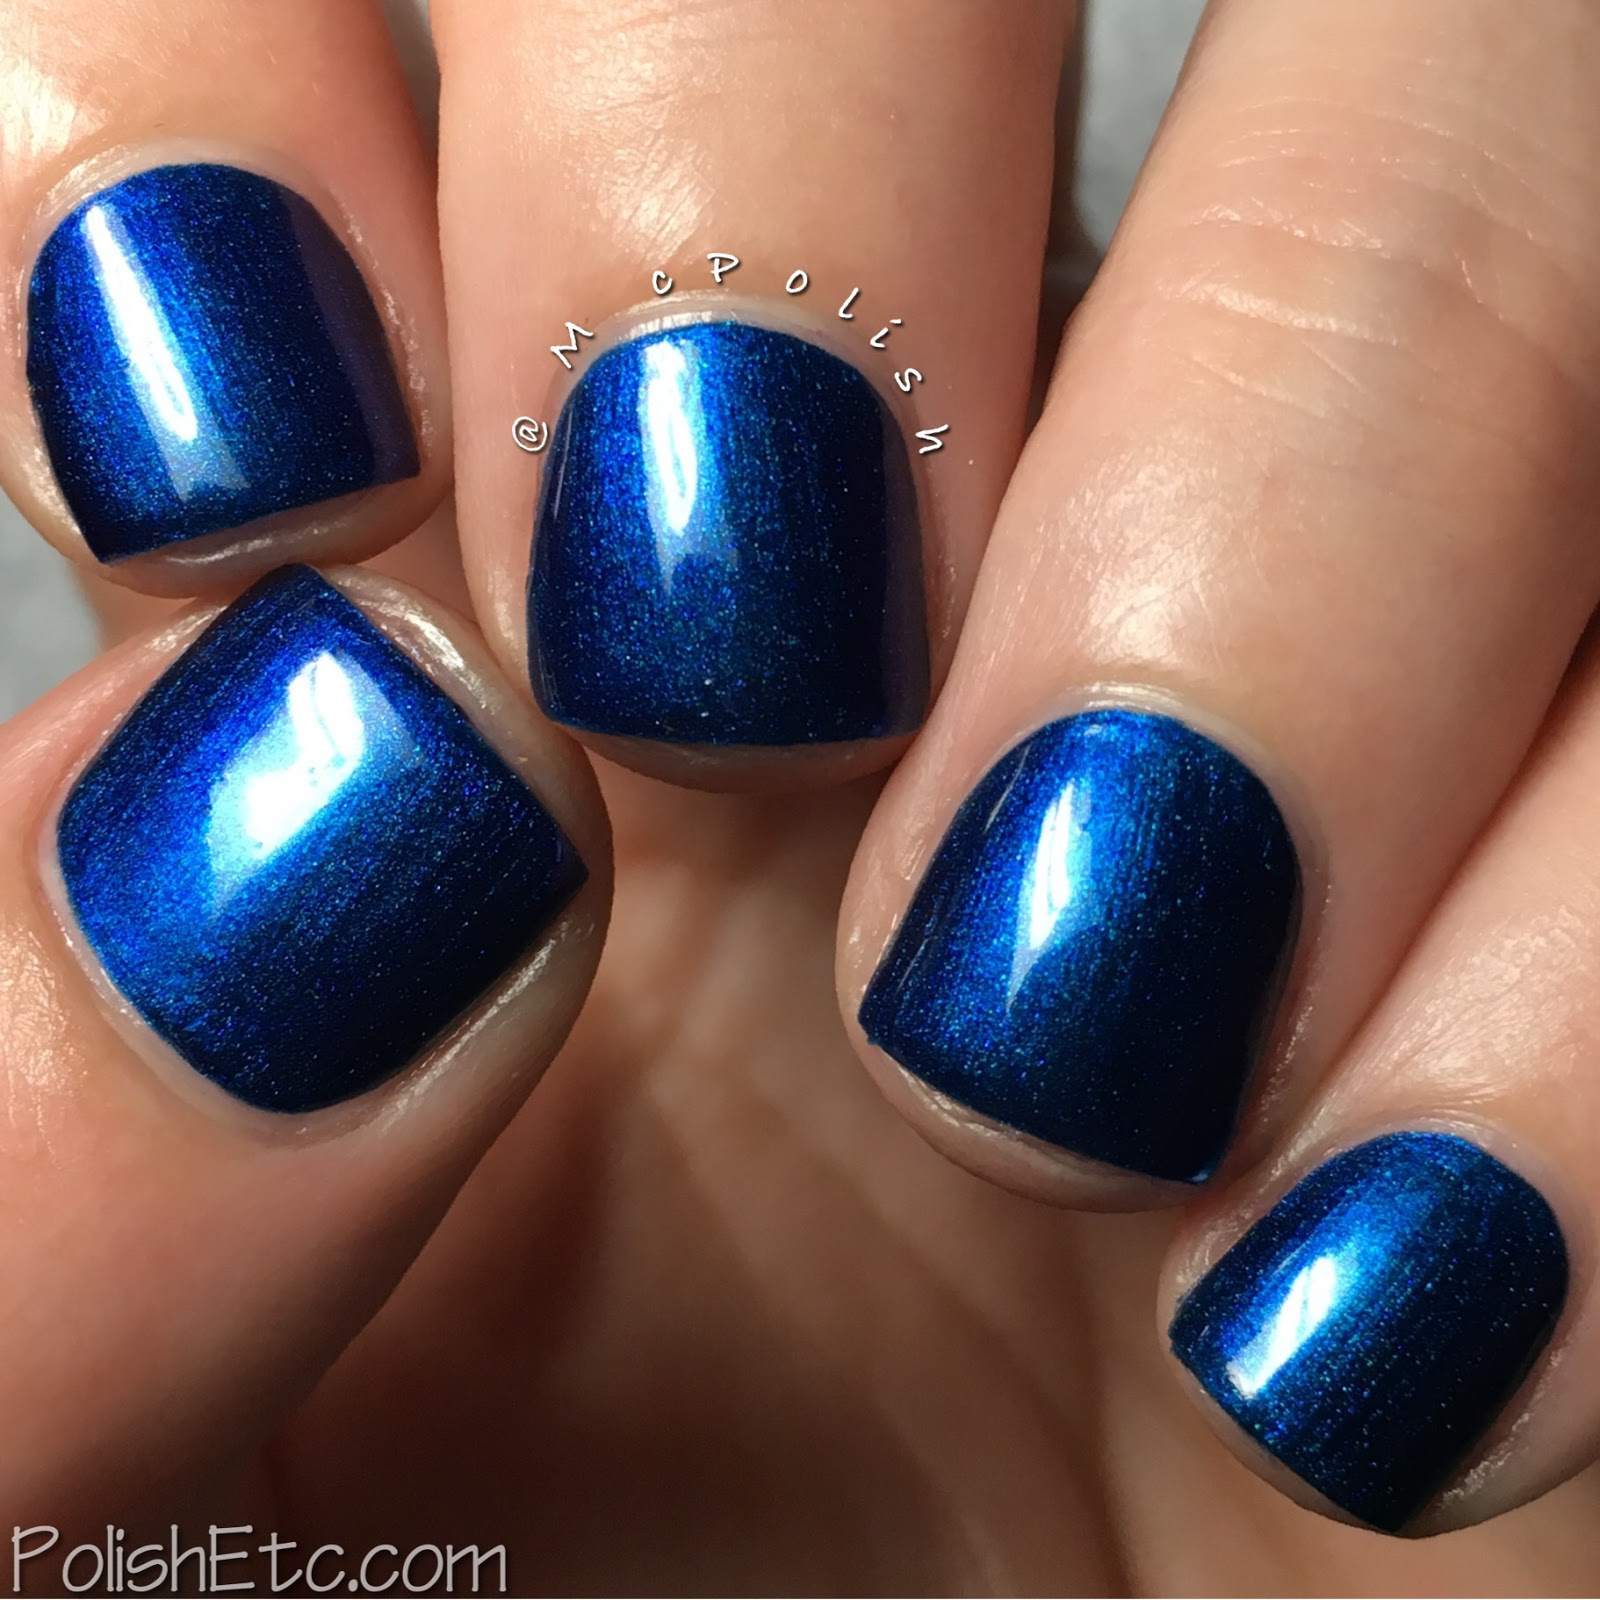 Great Lakes Lacquer - Polishing Poetic Collection - McPolish - The Tune Without Words